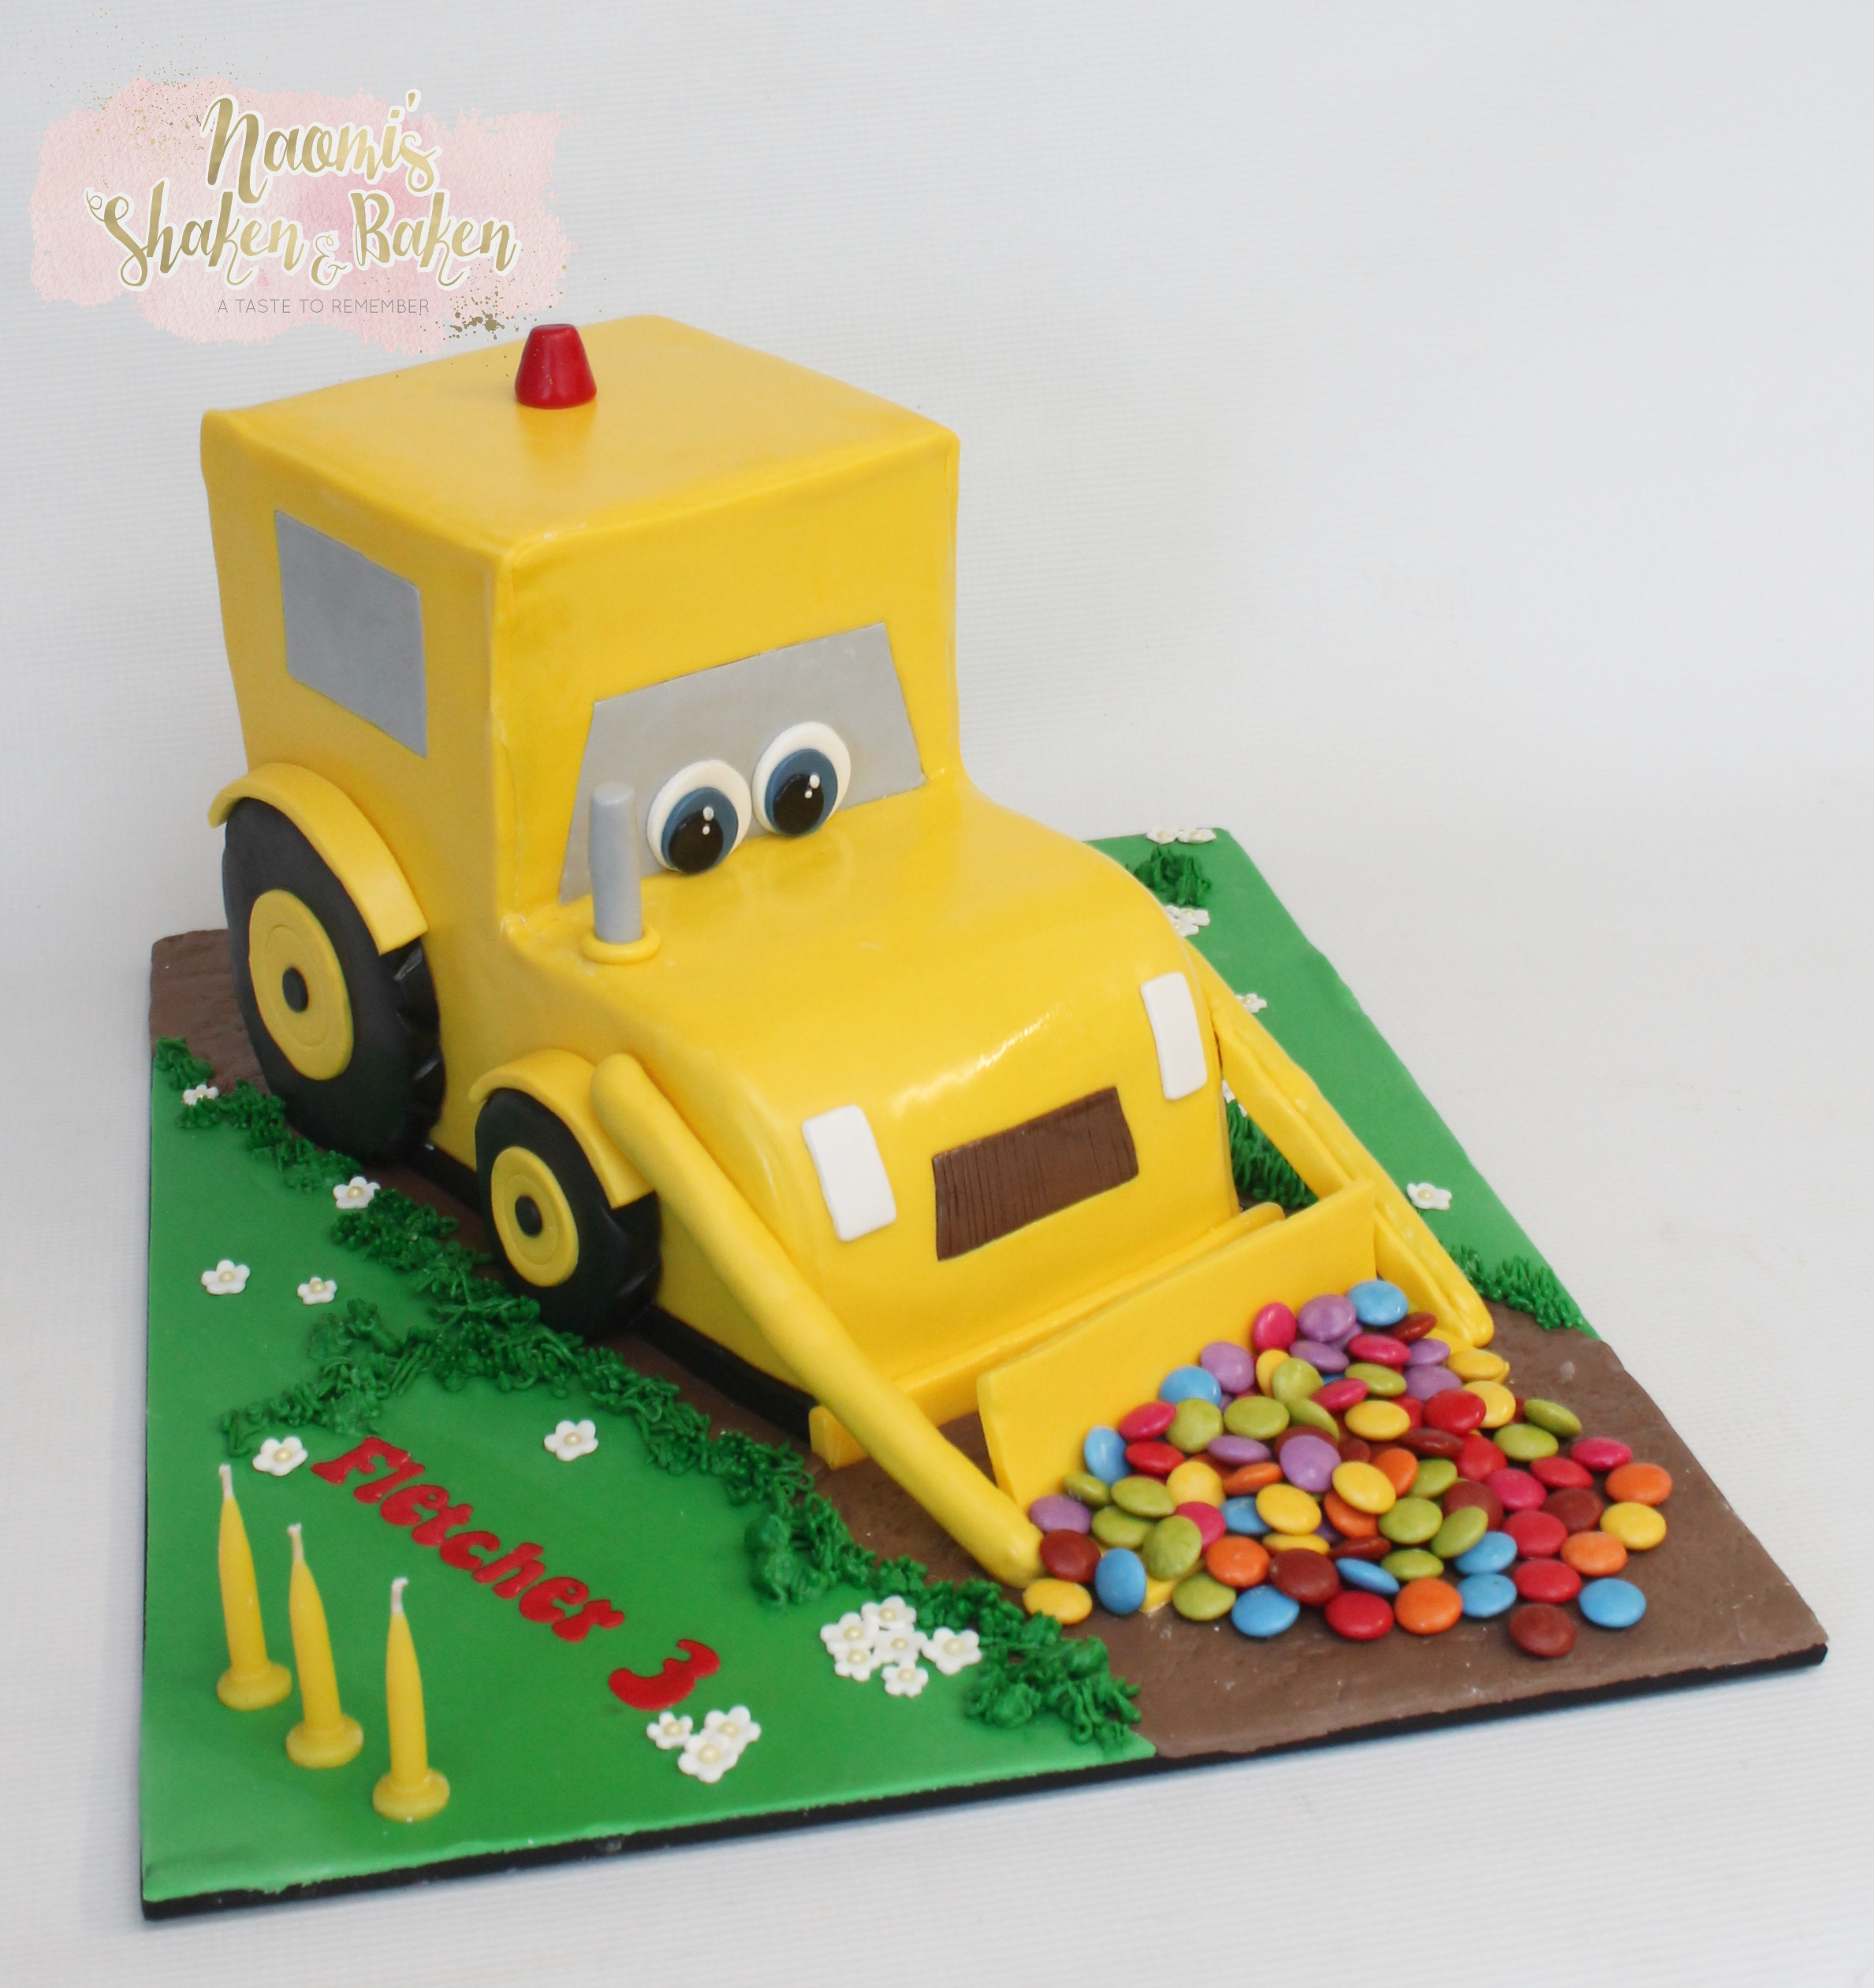 3D carved cake Caboolture